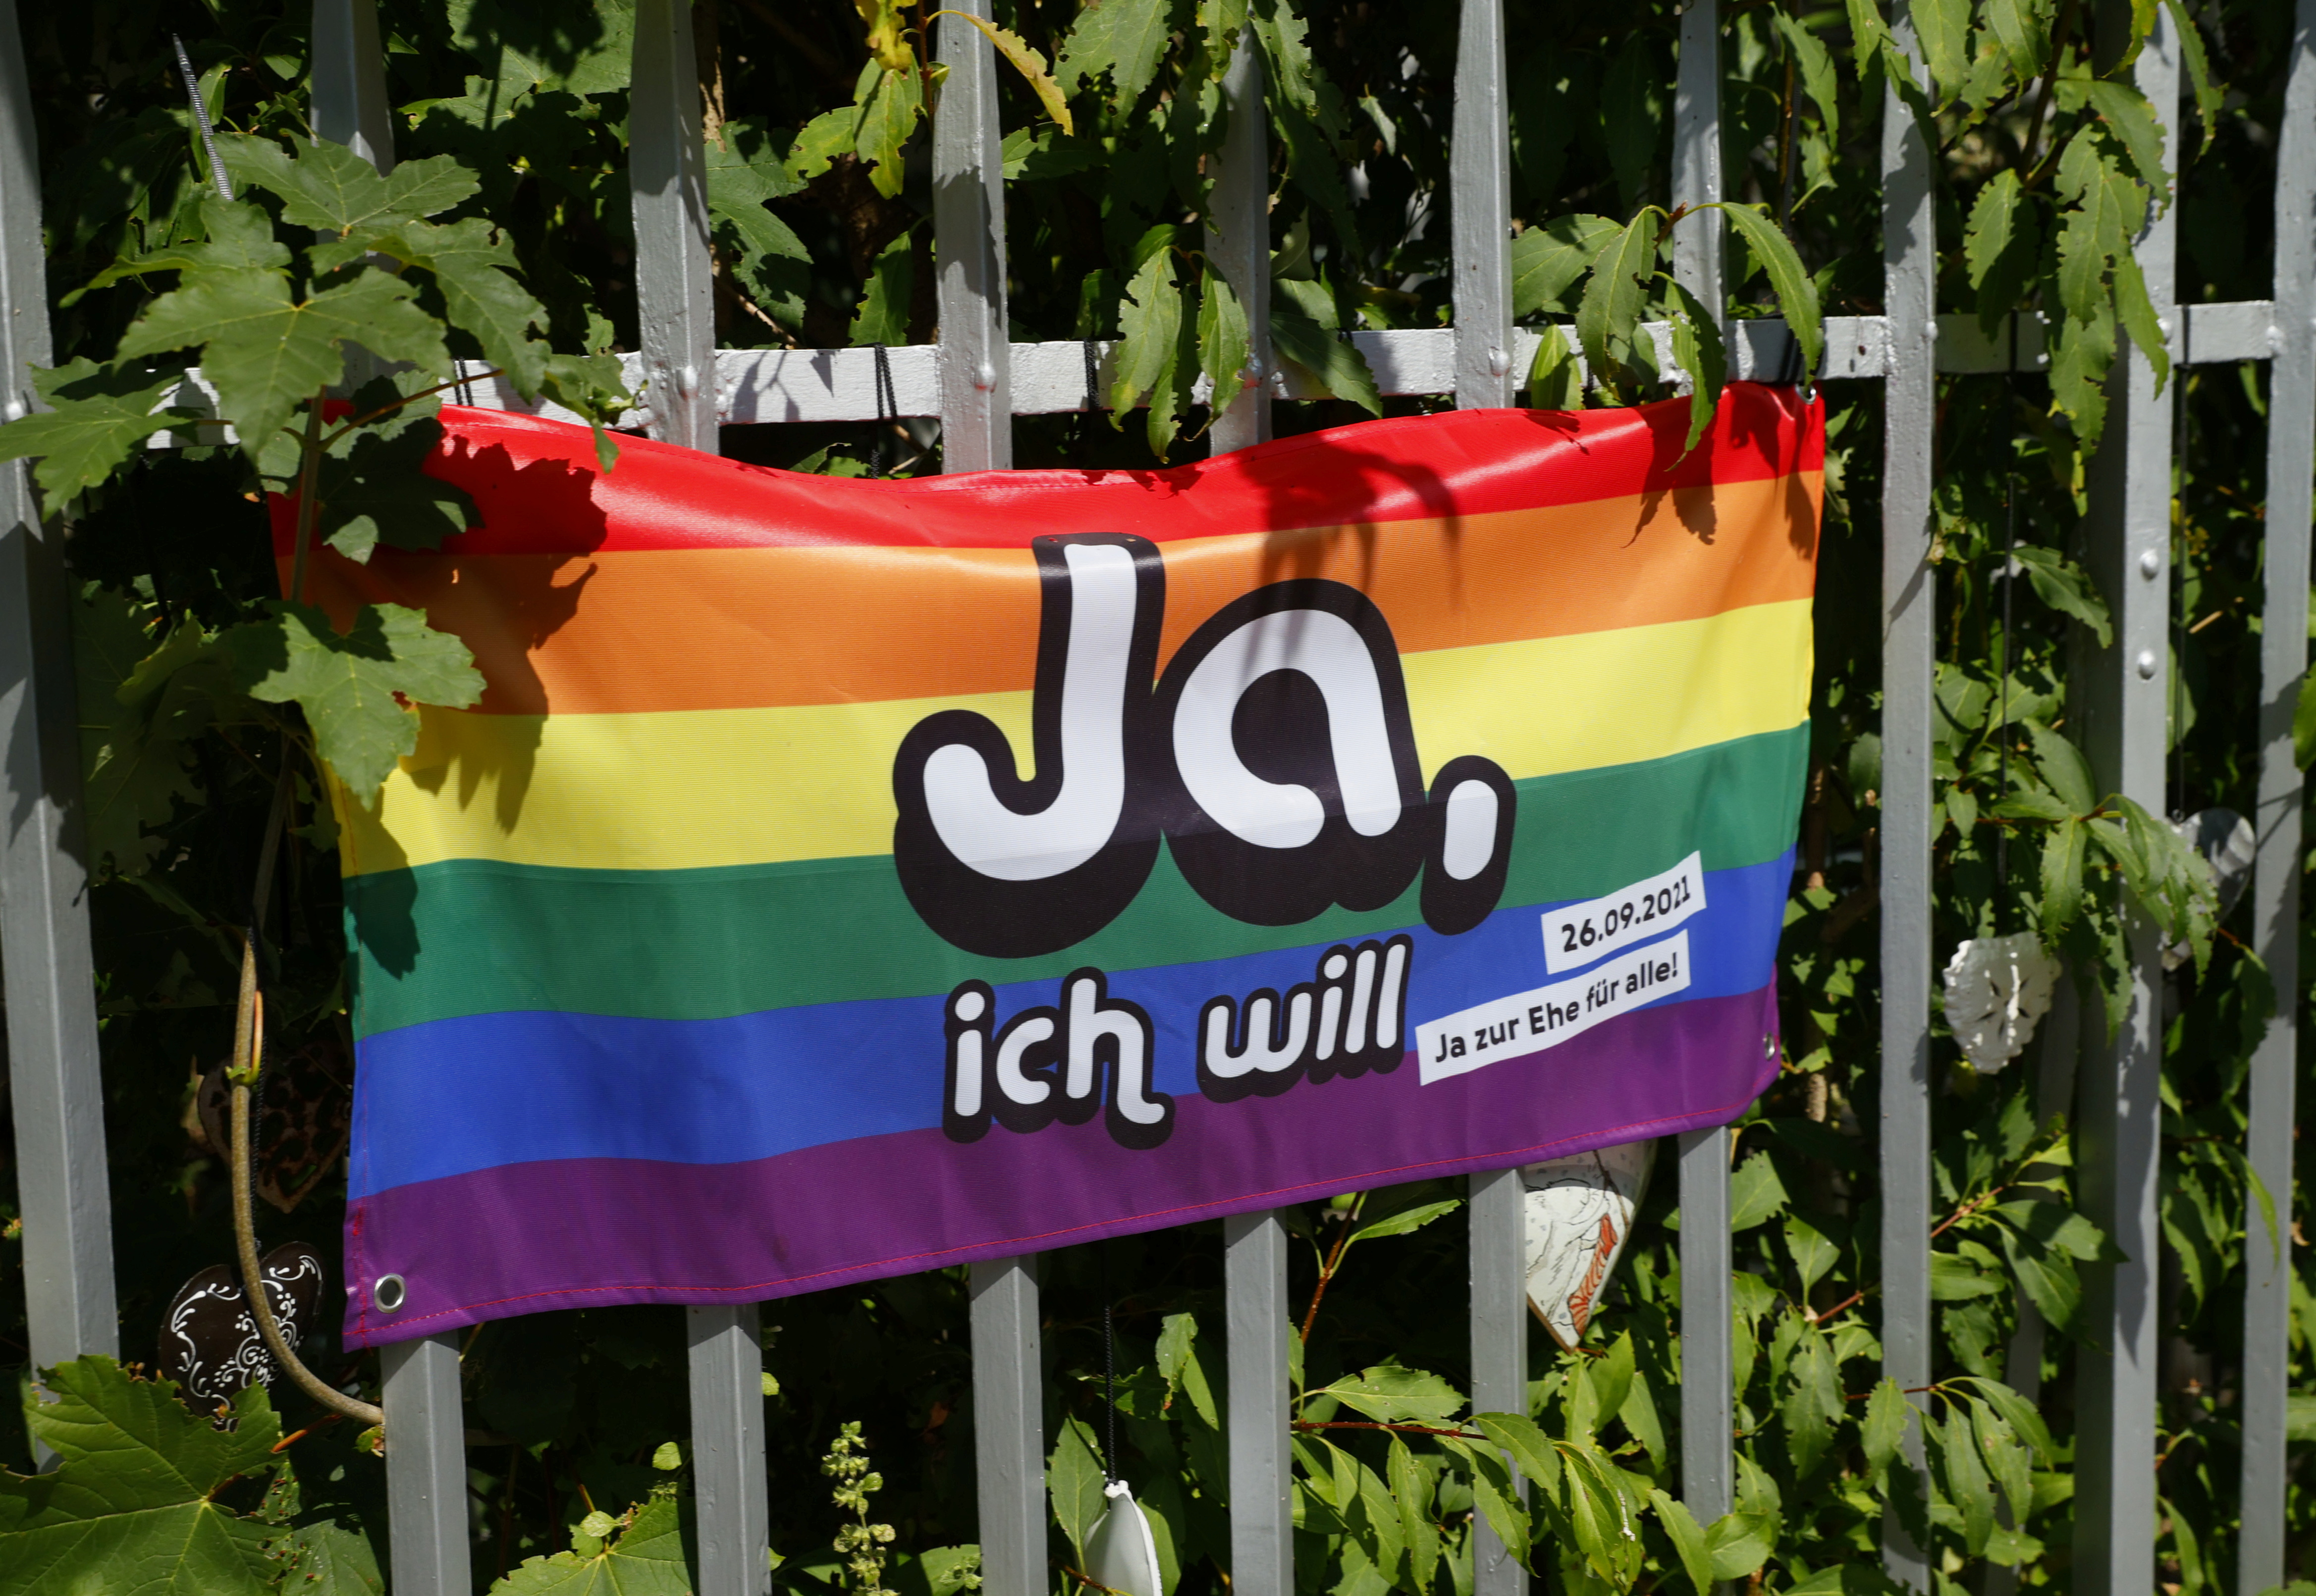 A flag is pictured ahead of a vote on same-sex marriage in Bern, Switzerland, September 8, 2021. Picture taken September 8, 2021. Flag reads: